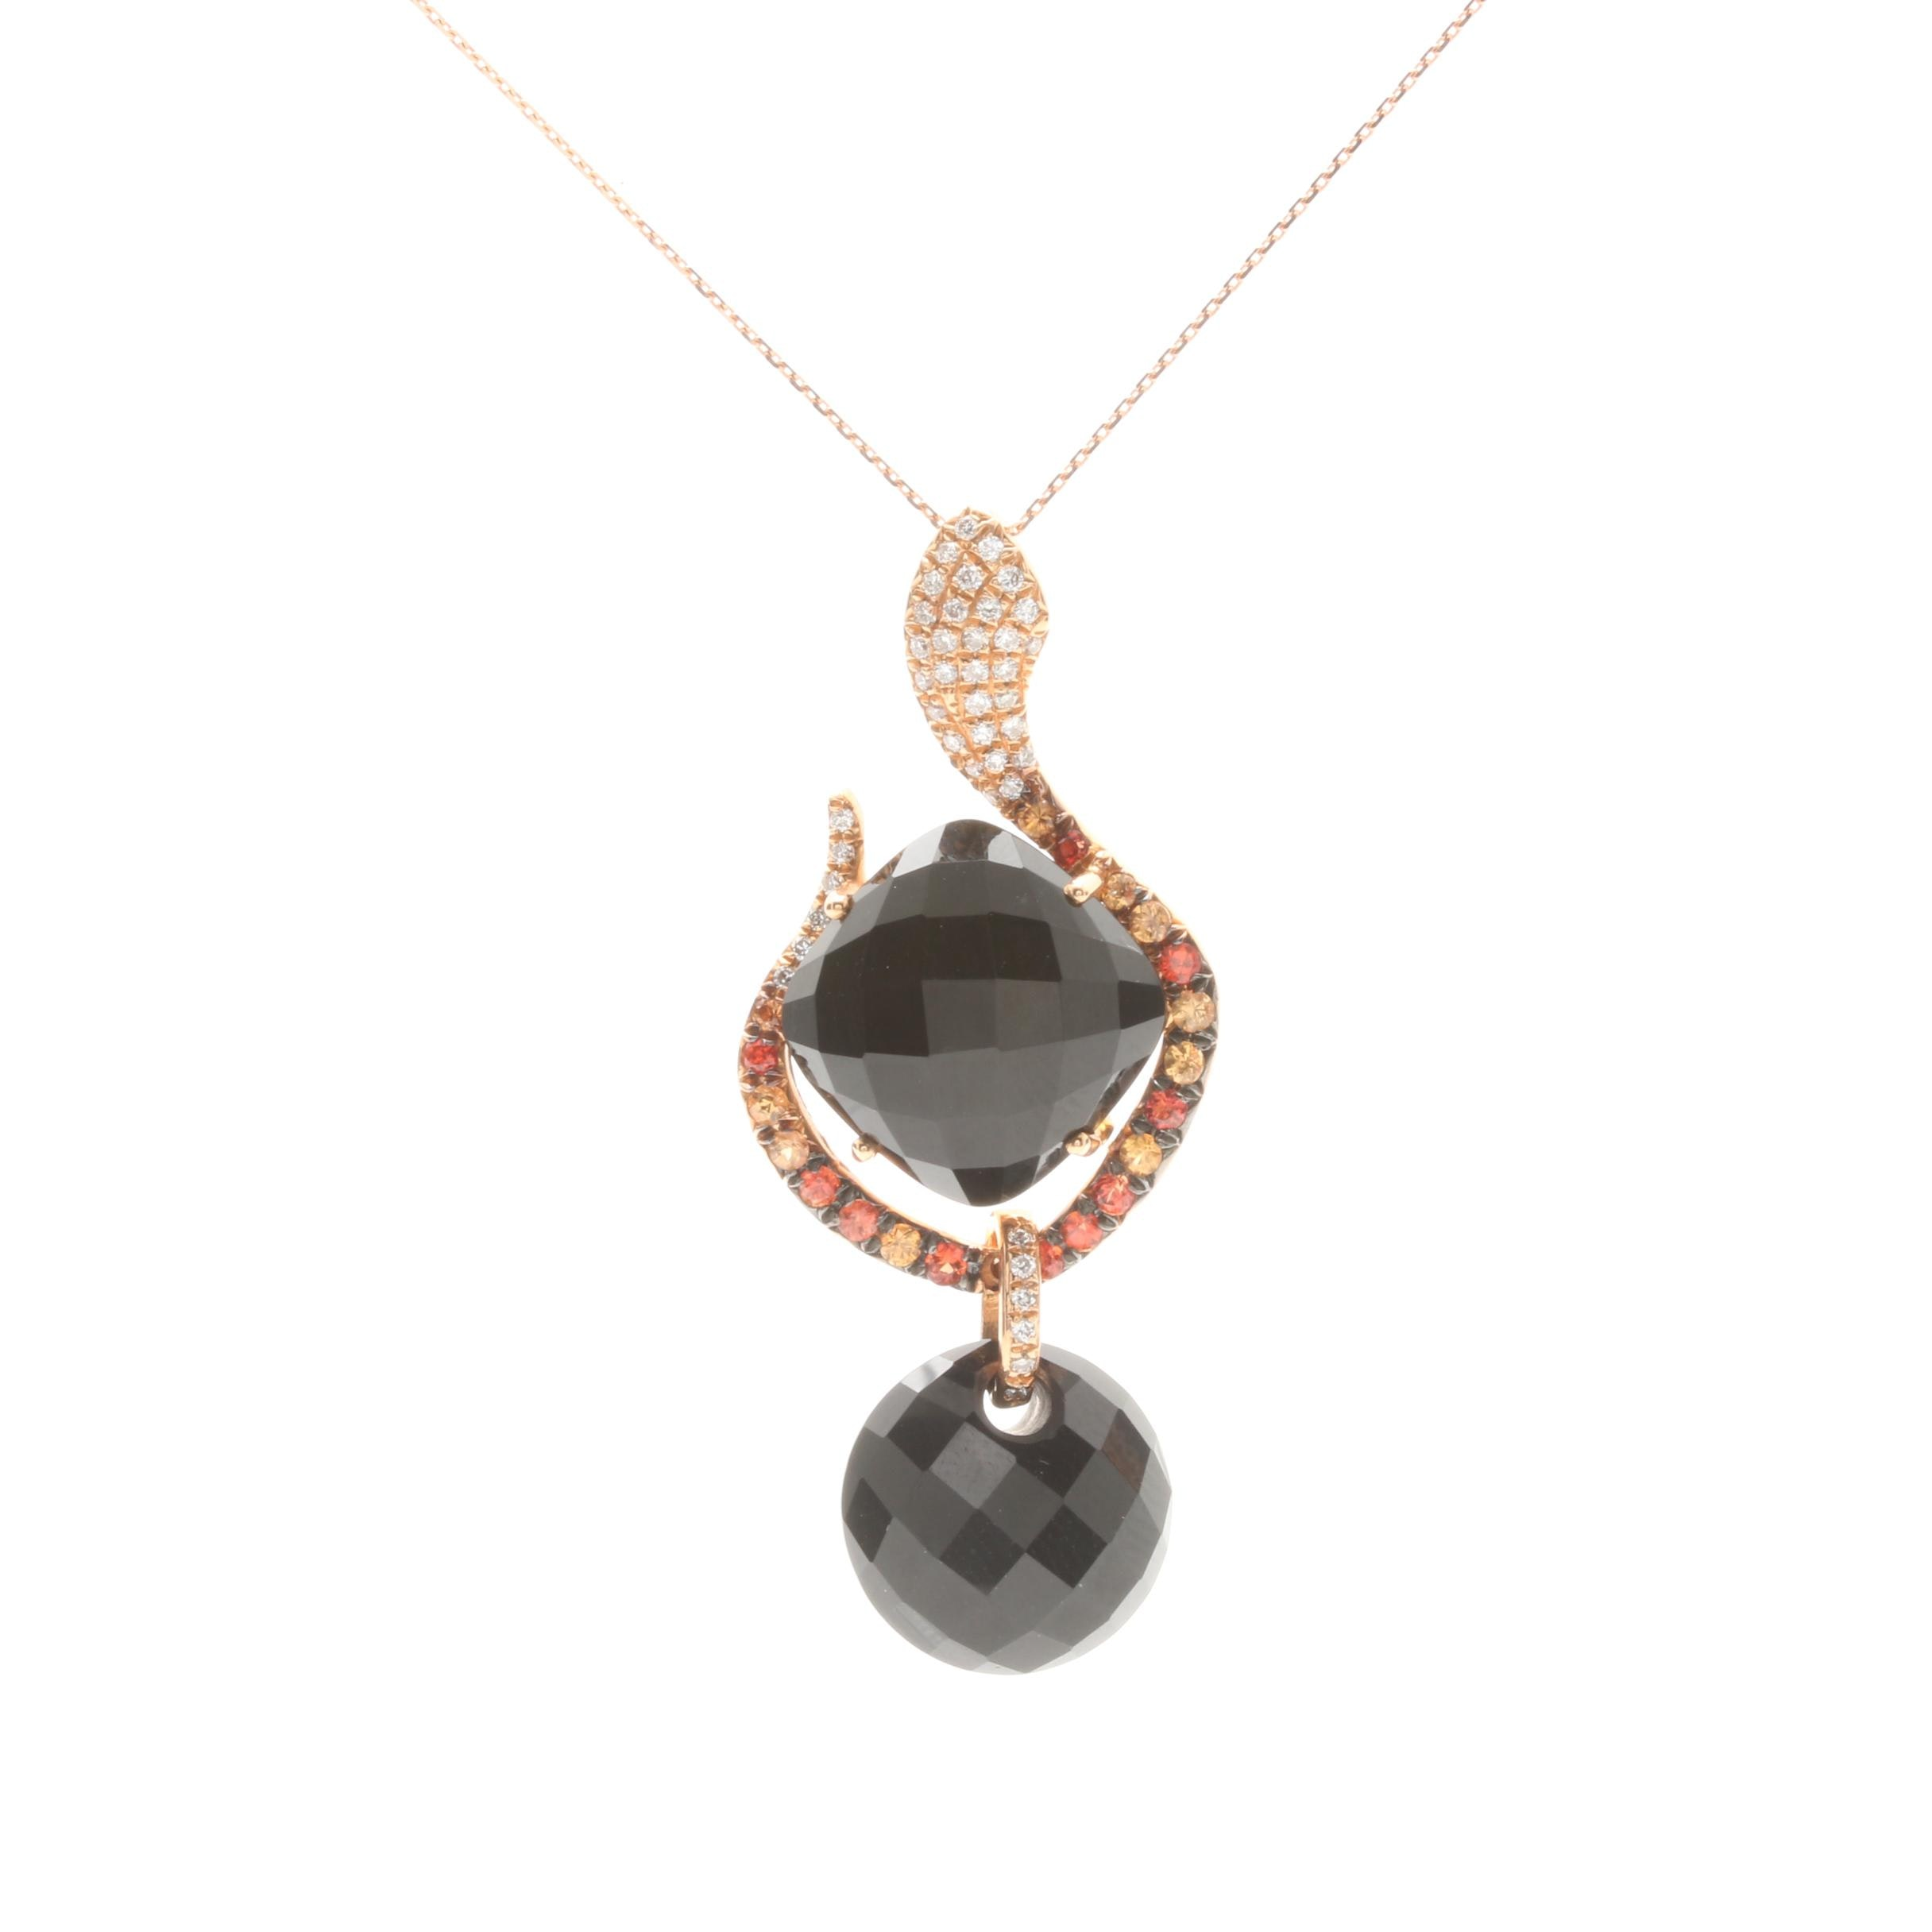 18K Rose Gold Onyx and Diamond Snake Pendant Necklace with Orange Sapphire